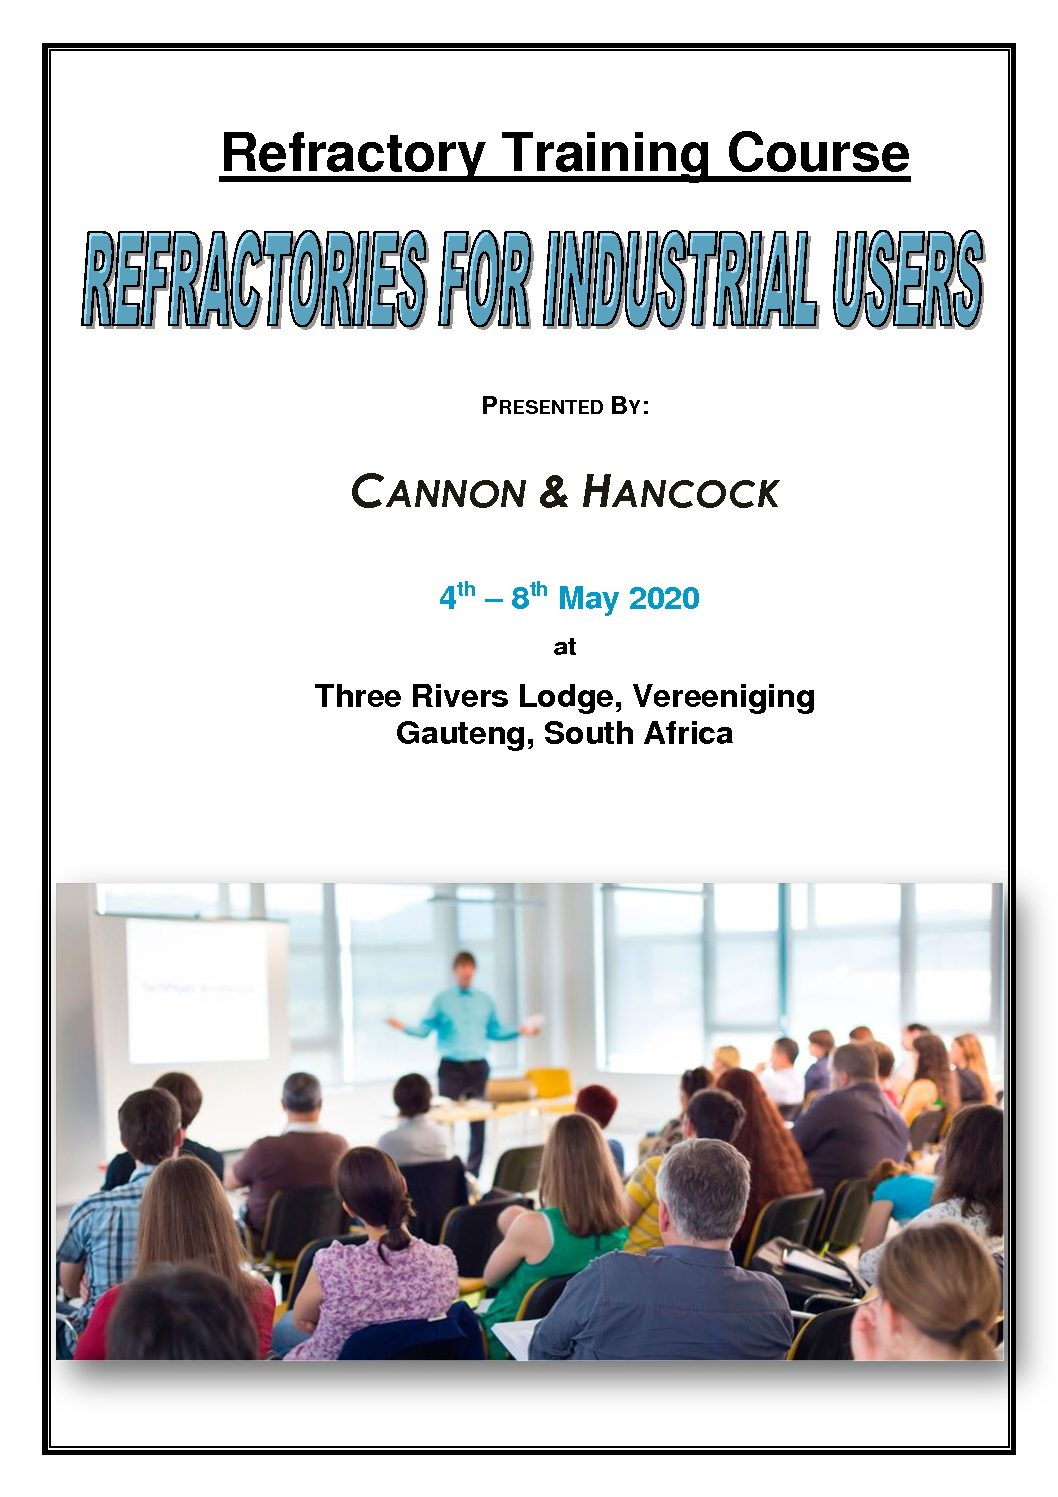 Refractories for Industrial Users - New Dates Announced May 2020